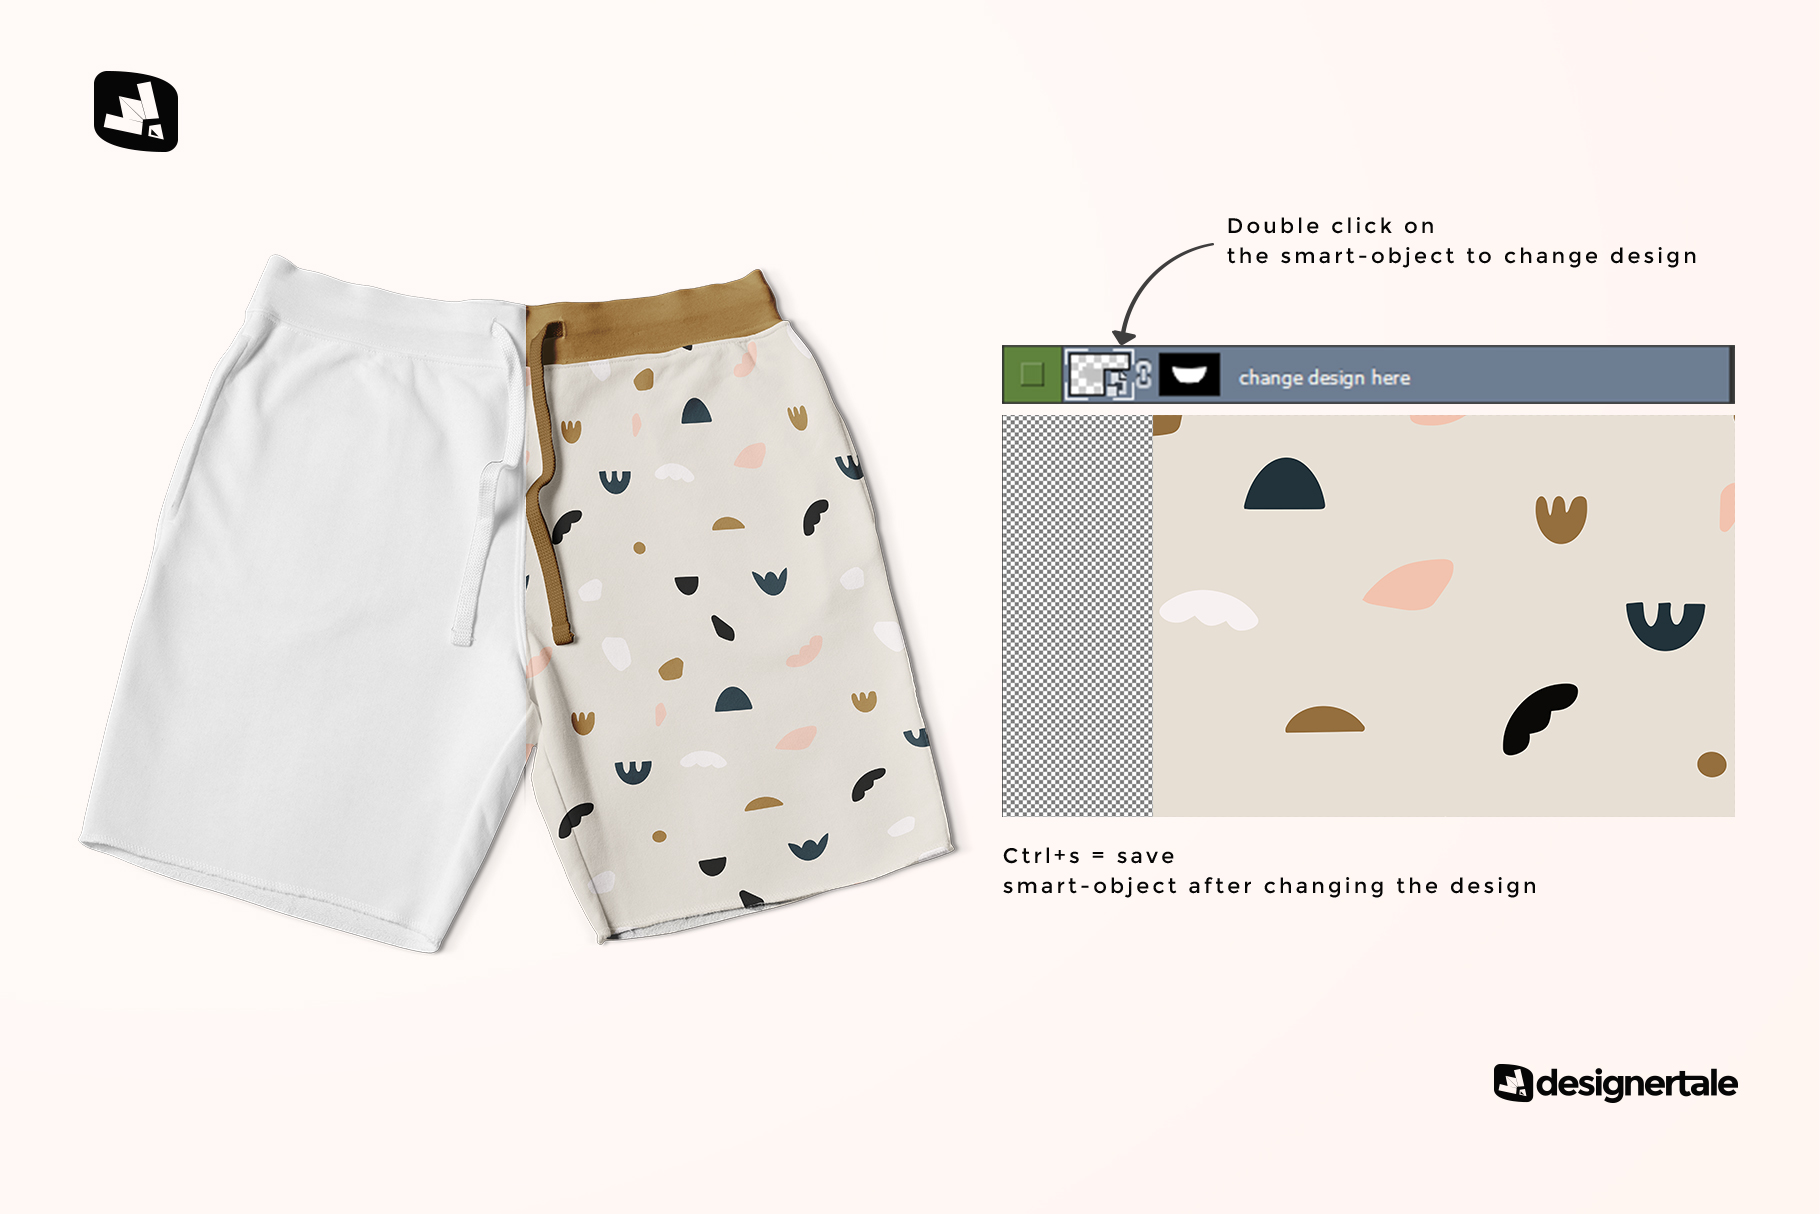 how to chnag edesign of the top view cotton shorts mockup